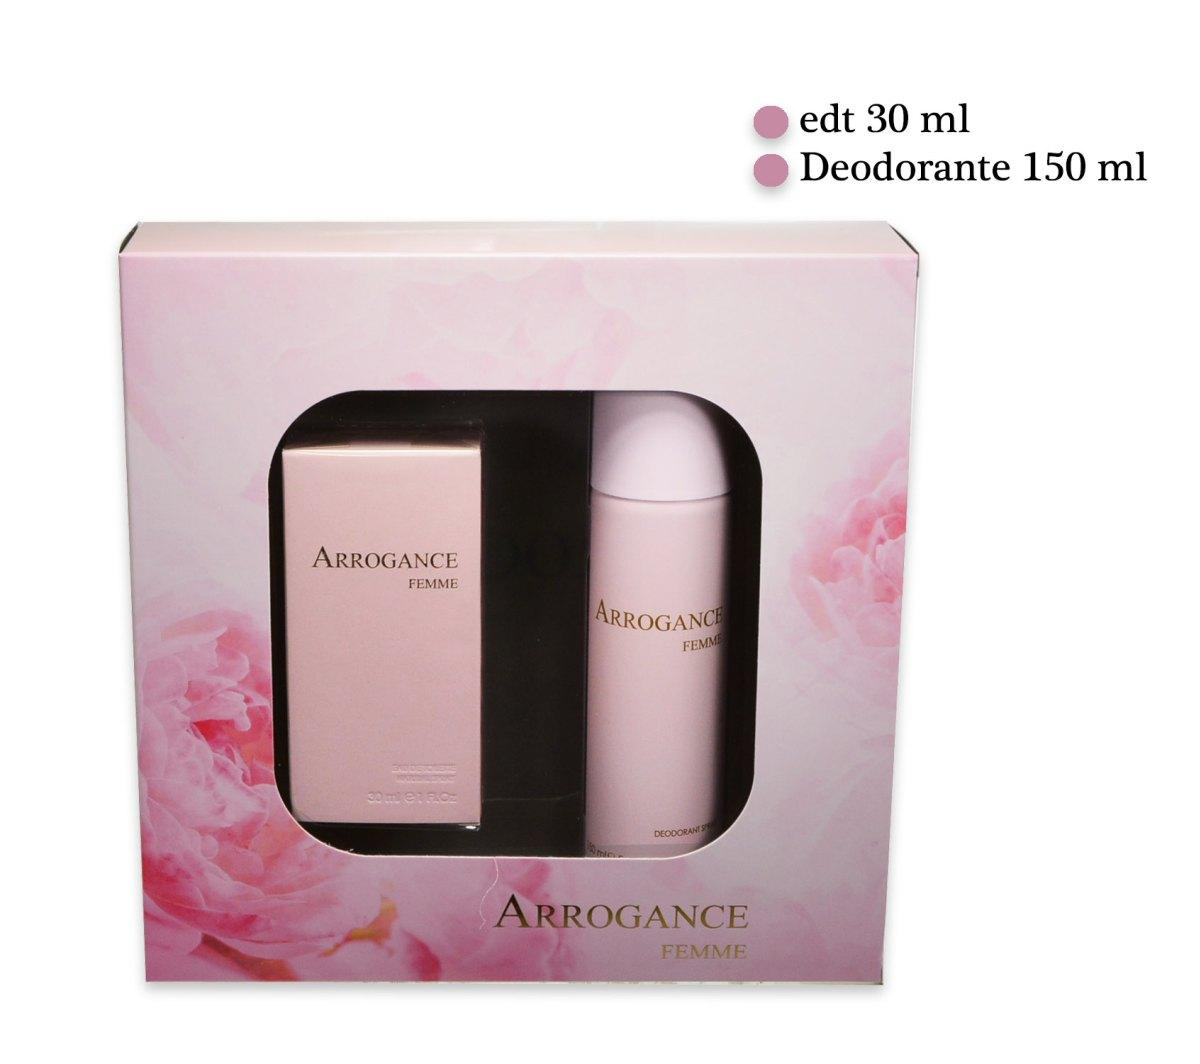 ARROGANCE FEMME KIT CONFEZIONE EDT 30 ml DEO SPRAY 150ml